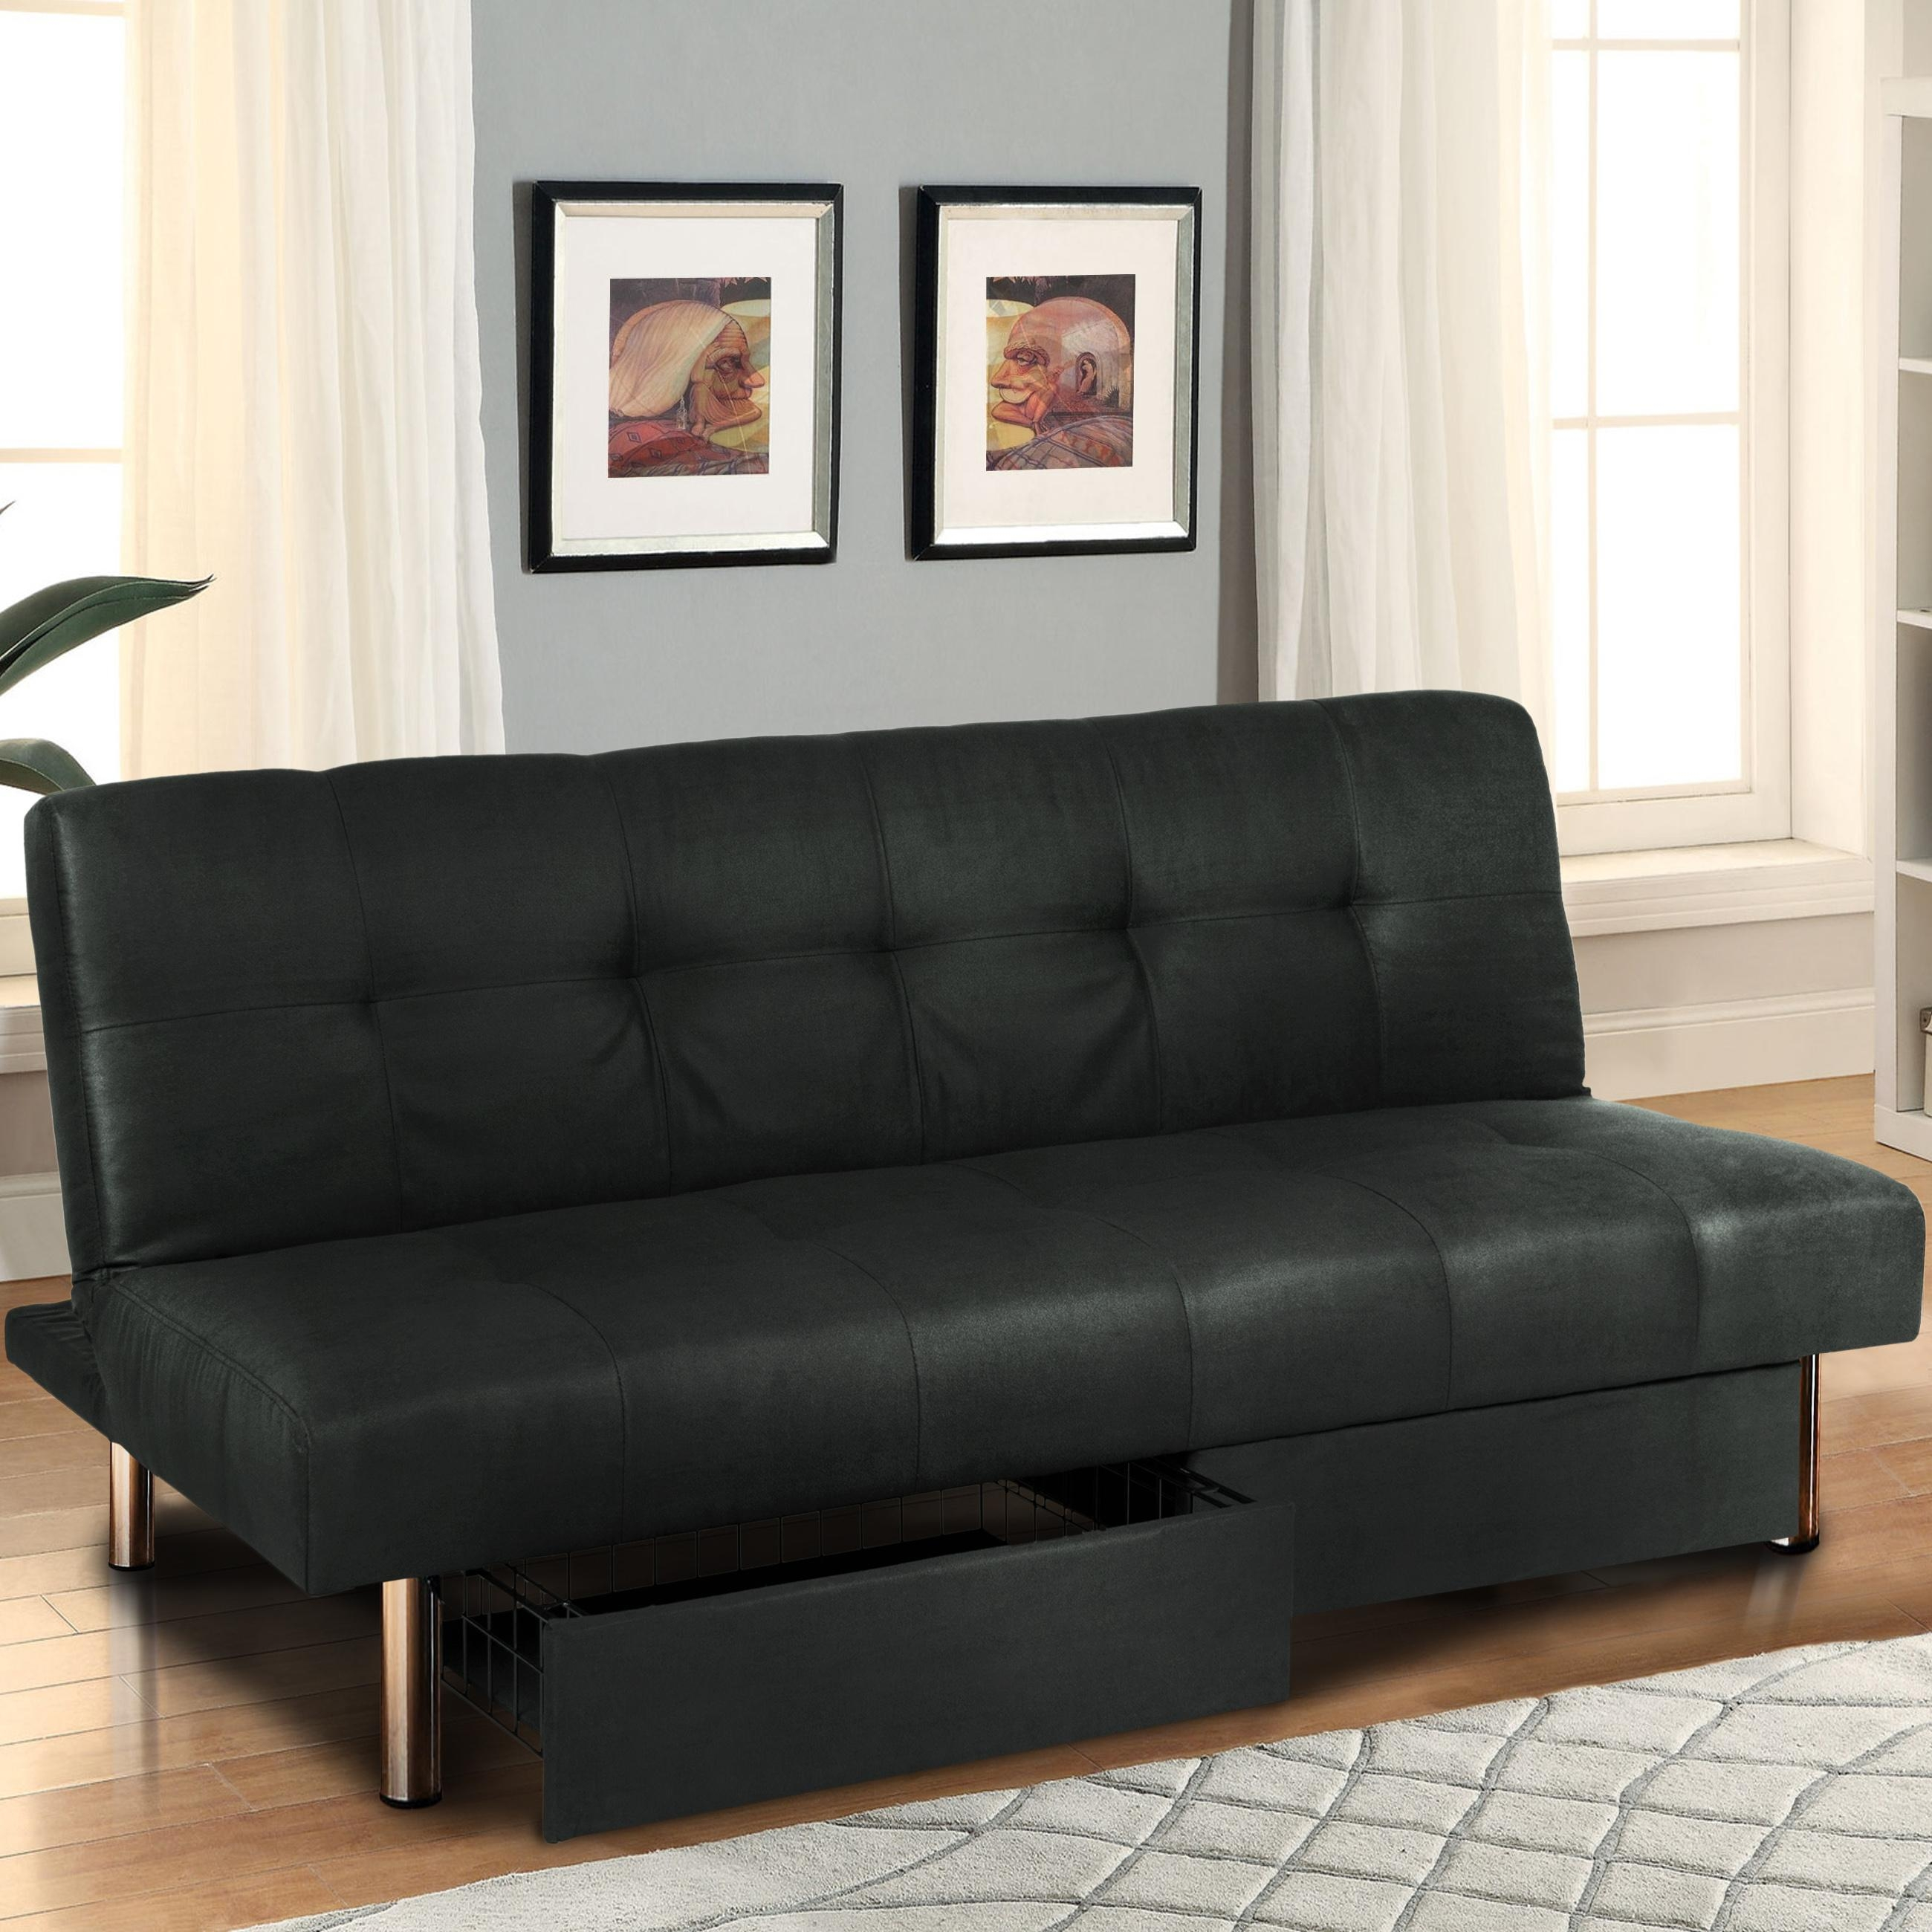 Microfiber Futon Folding Sofa Bed Couch Mattress & Storage With Futon Couch Beds (View 15 of 20)